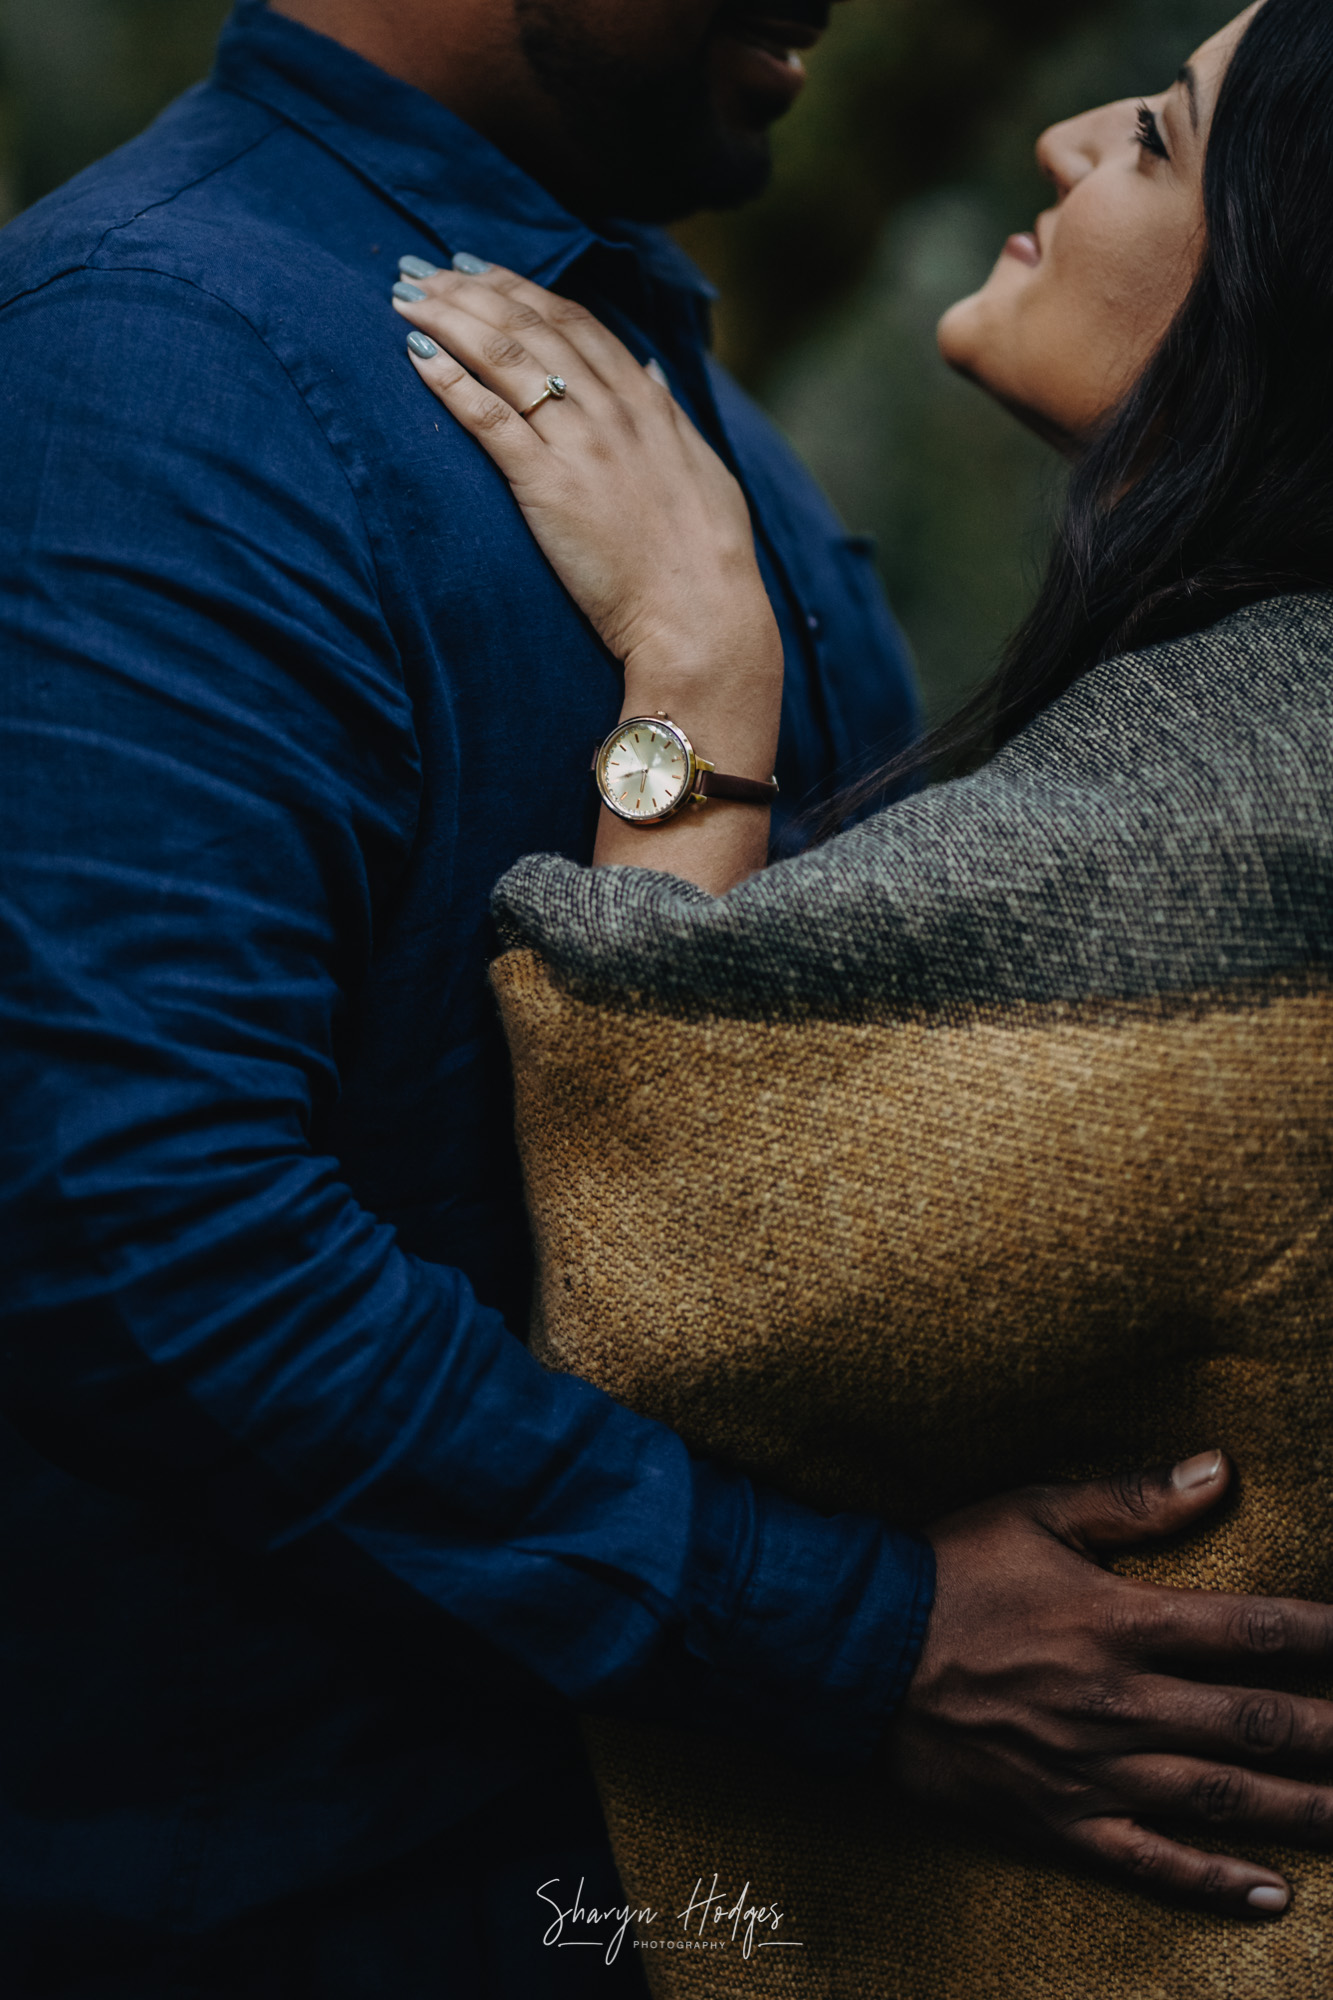 Amy & Blaine's engagement shoot took place in the indigenous fynbos and then forest of Jubilee Creek in Rheenendal just outside of Knysna. Photography by Sharyn Hodges.